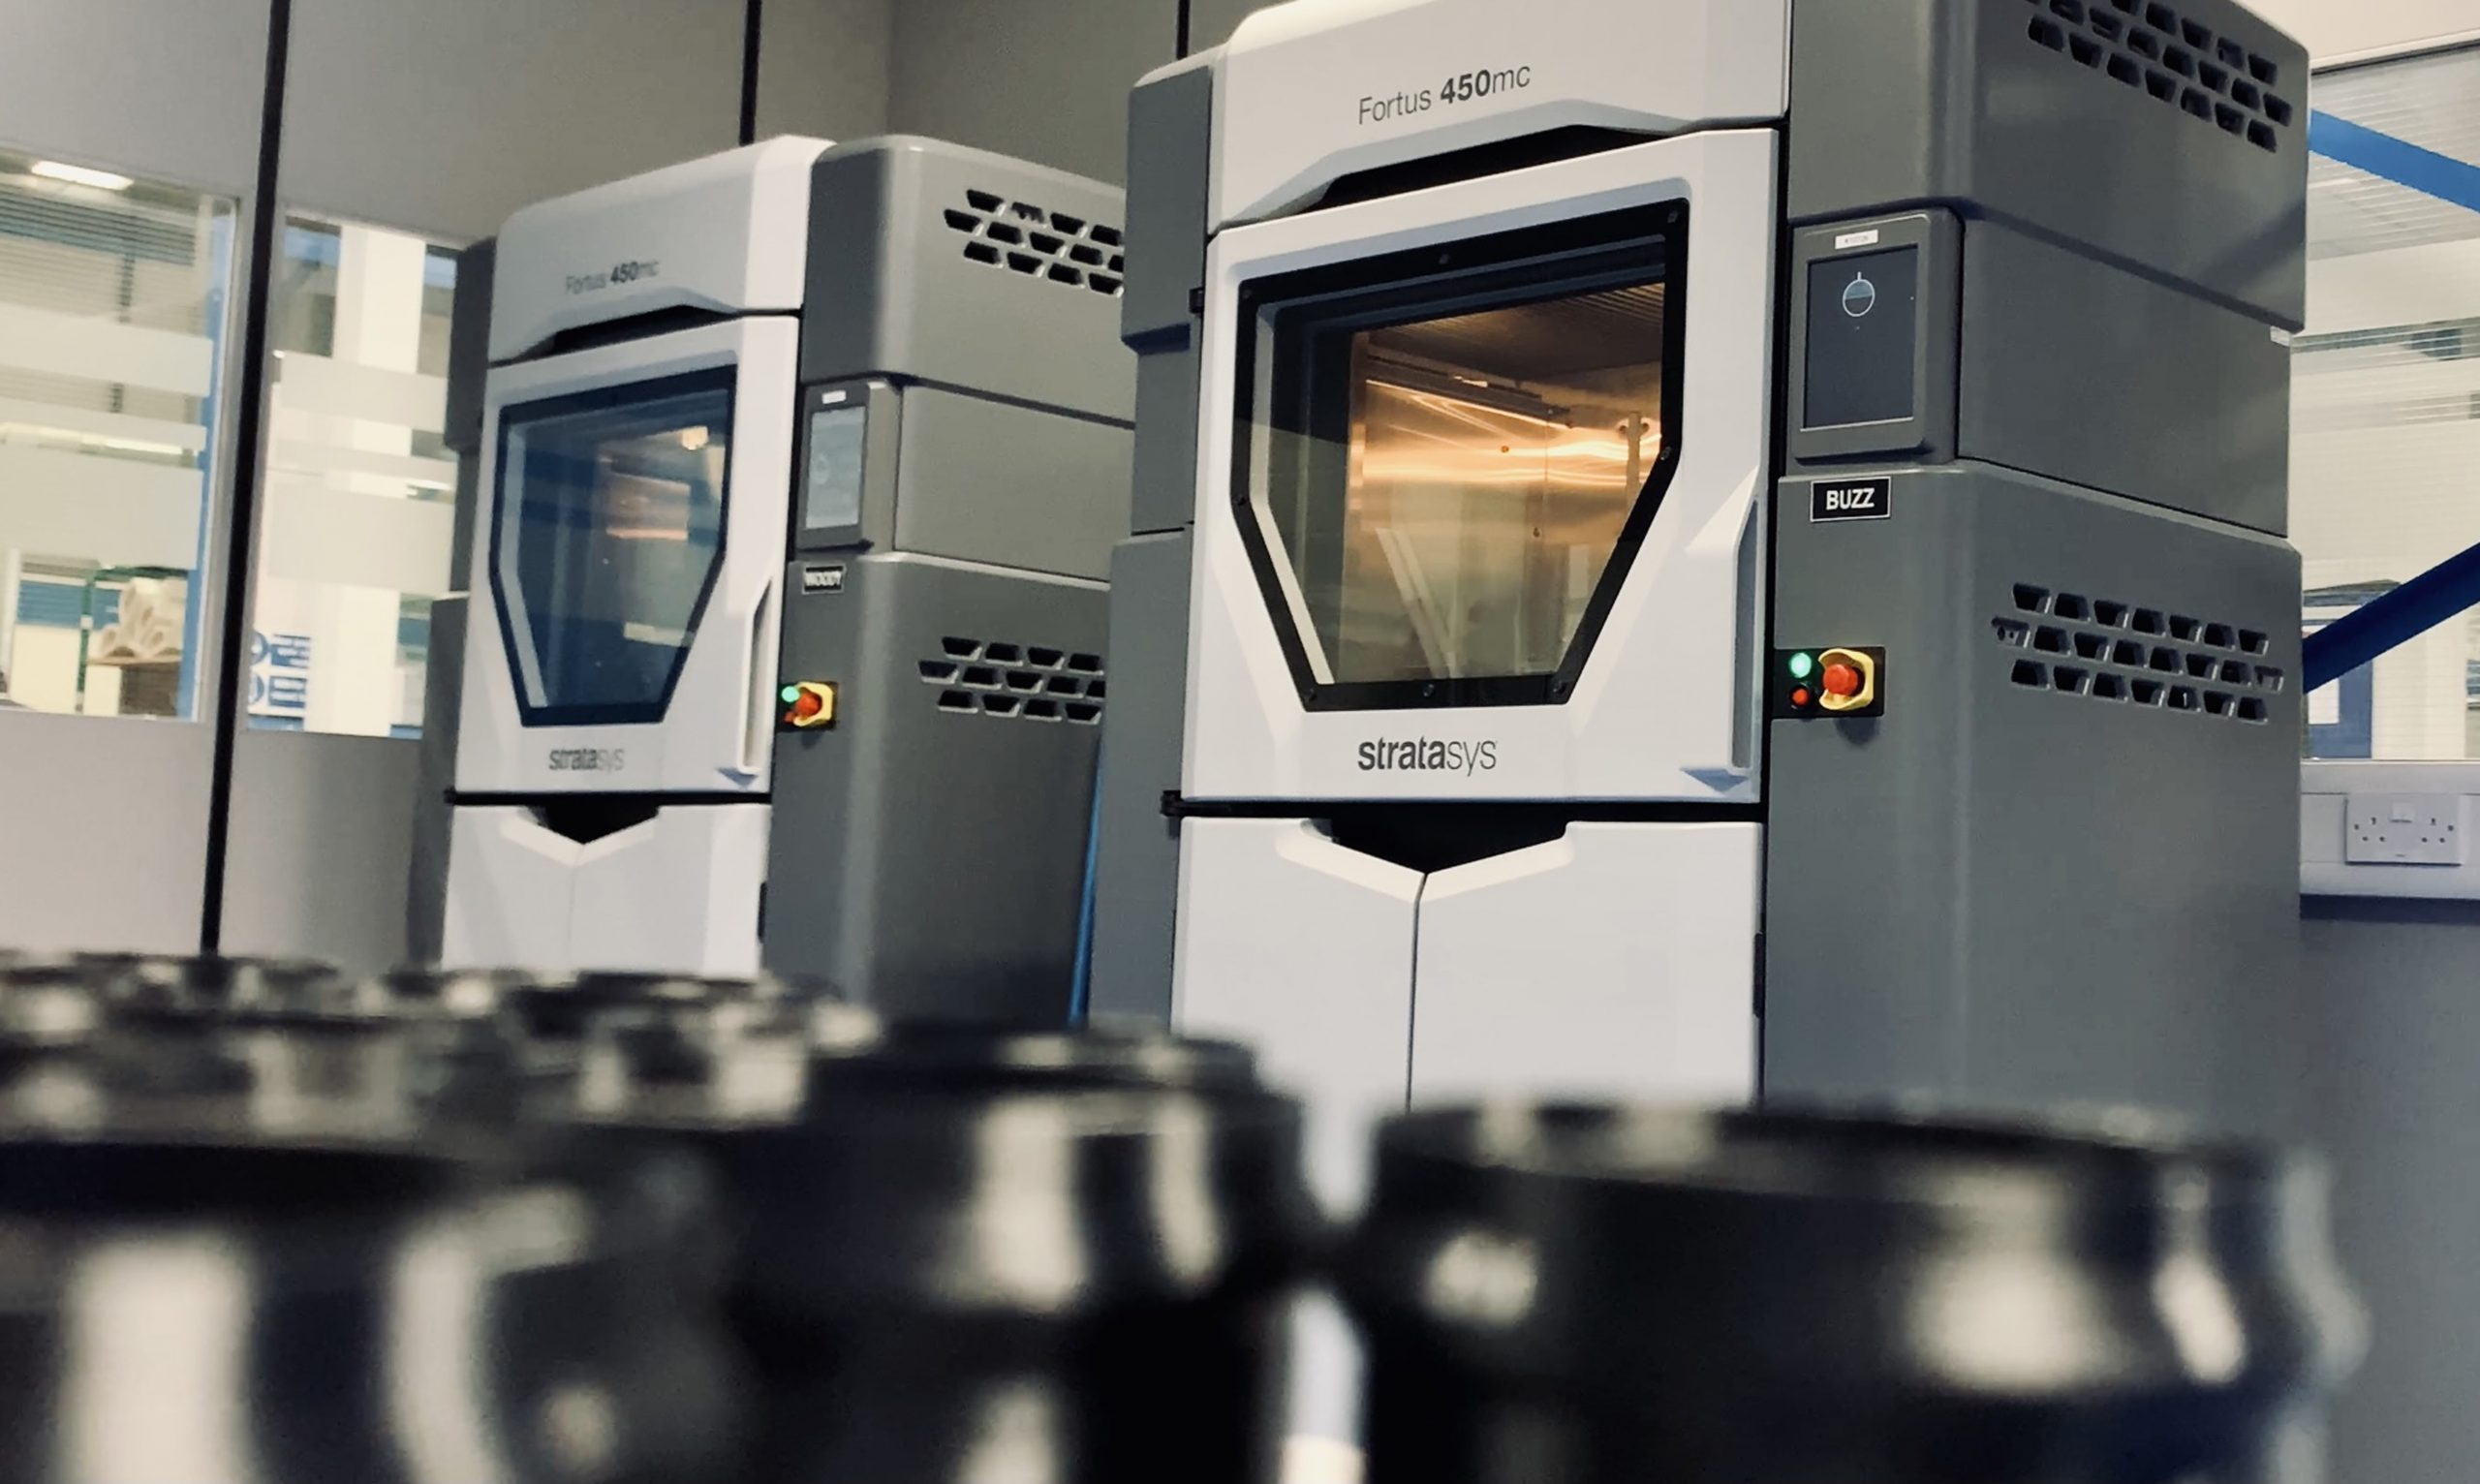 Having completed and approved the necessary qualification reports, Senior Aerospace BWT is now fully capable of 3D printing interior aircraft components to meet the needs of aircraft manufacturers. Photo via Stratasys.